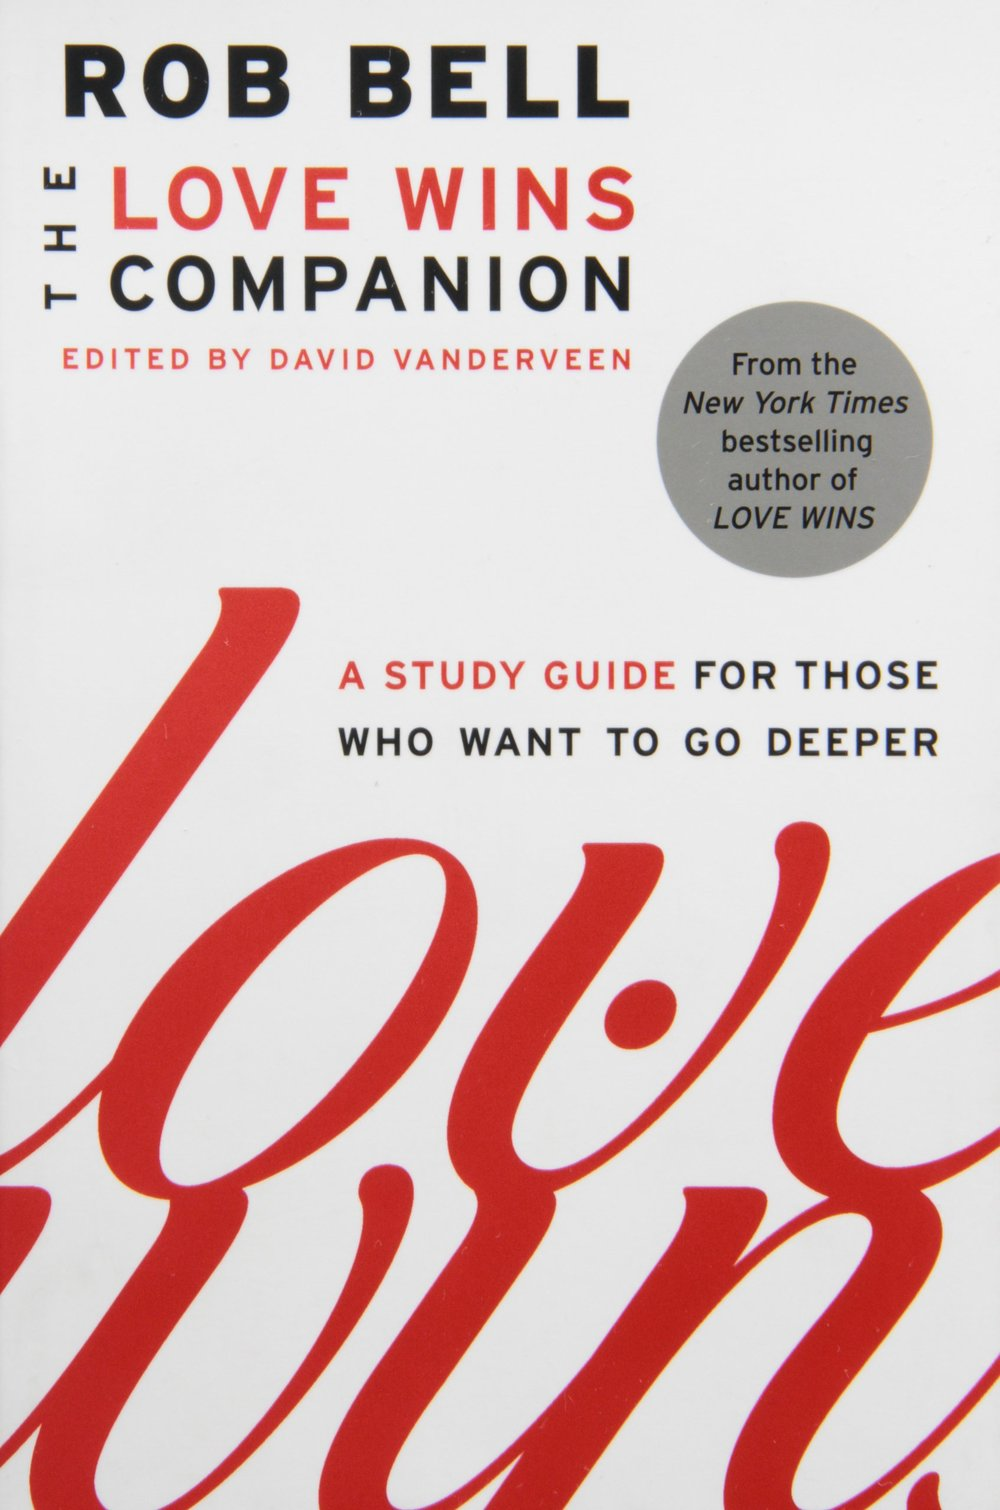 - David is the editor of the official companion book to Rob Bell's bestselling Love Wins: The Love Wins Companion A Study Guide for Those Who Want to Go Deeper